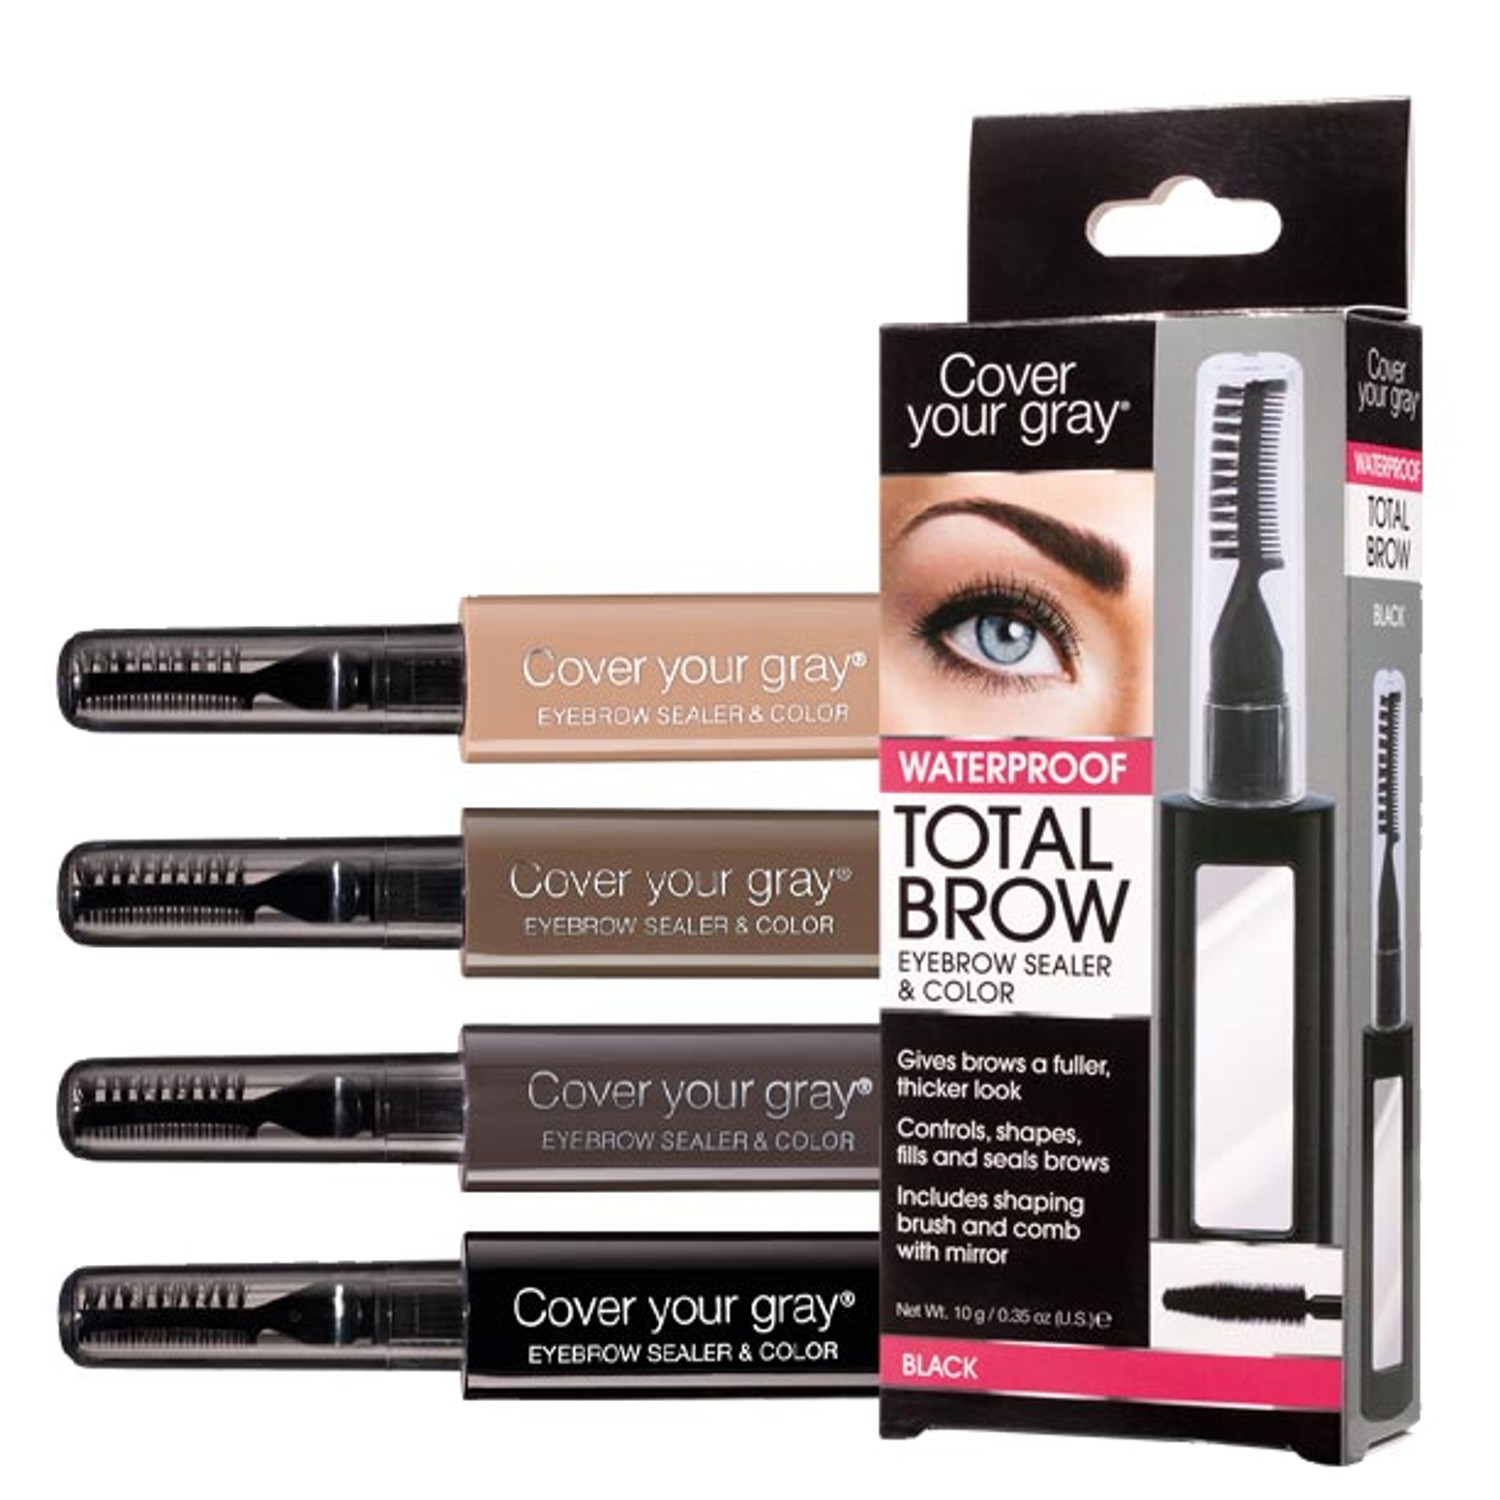 Cover your gray Total Brow waterproof 10 g